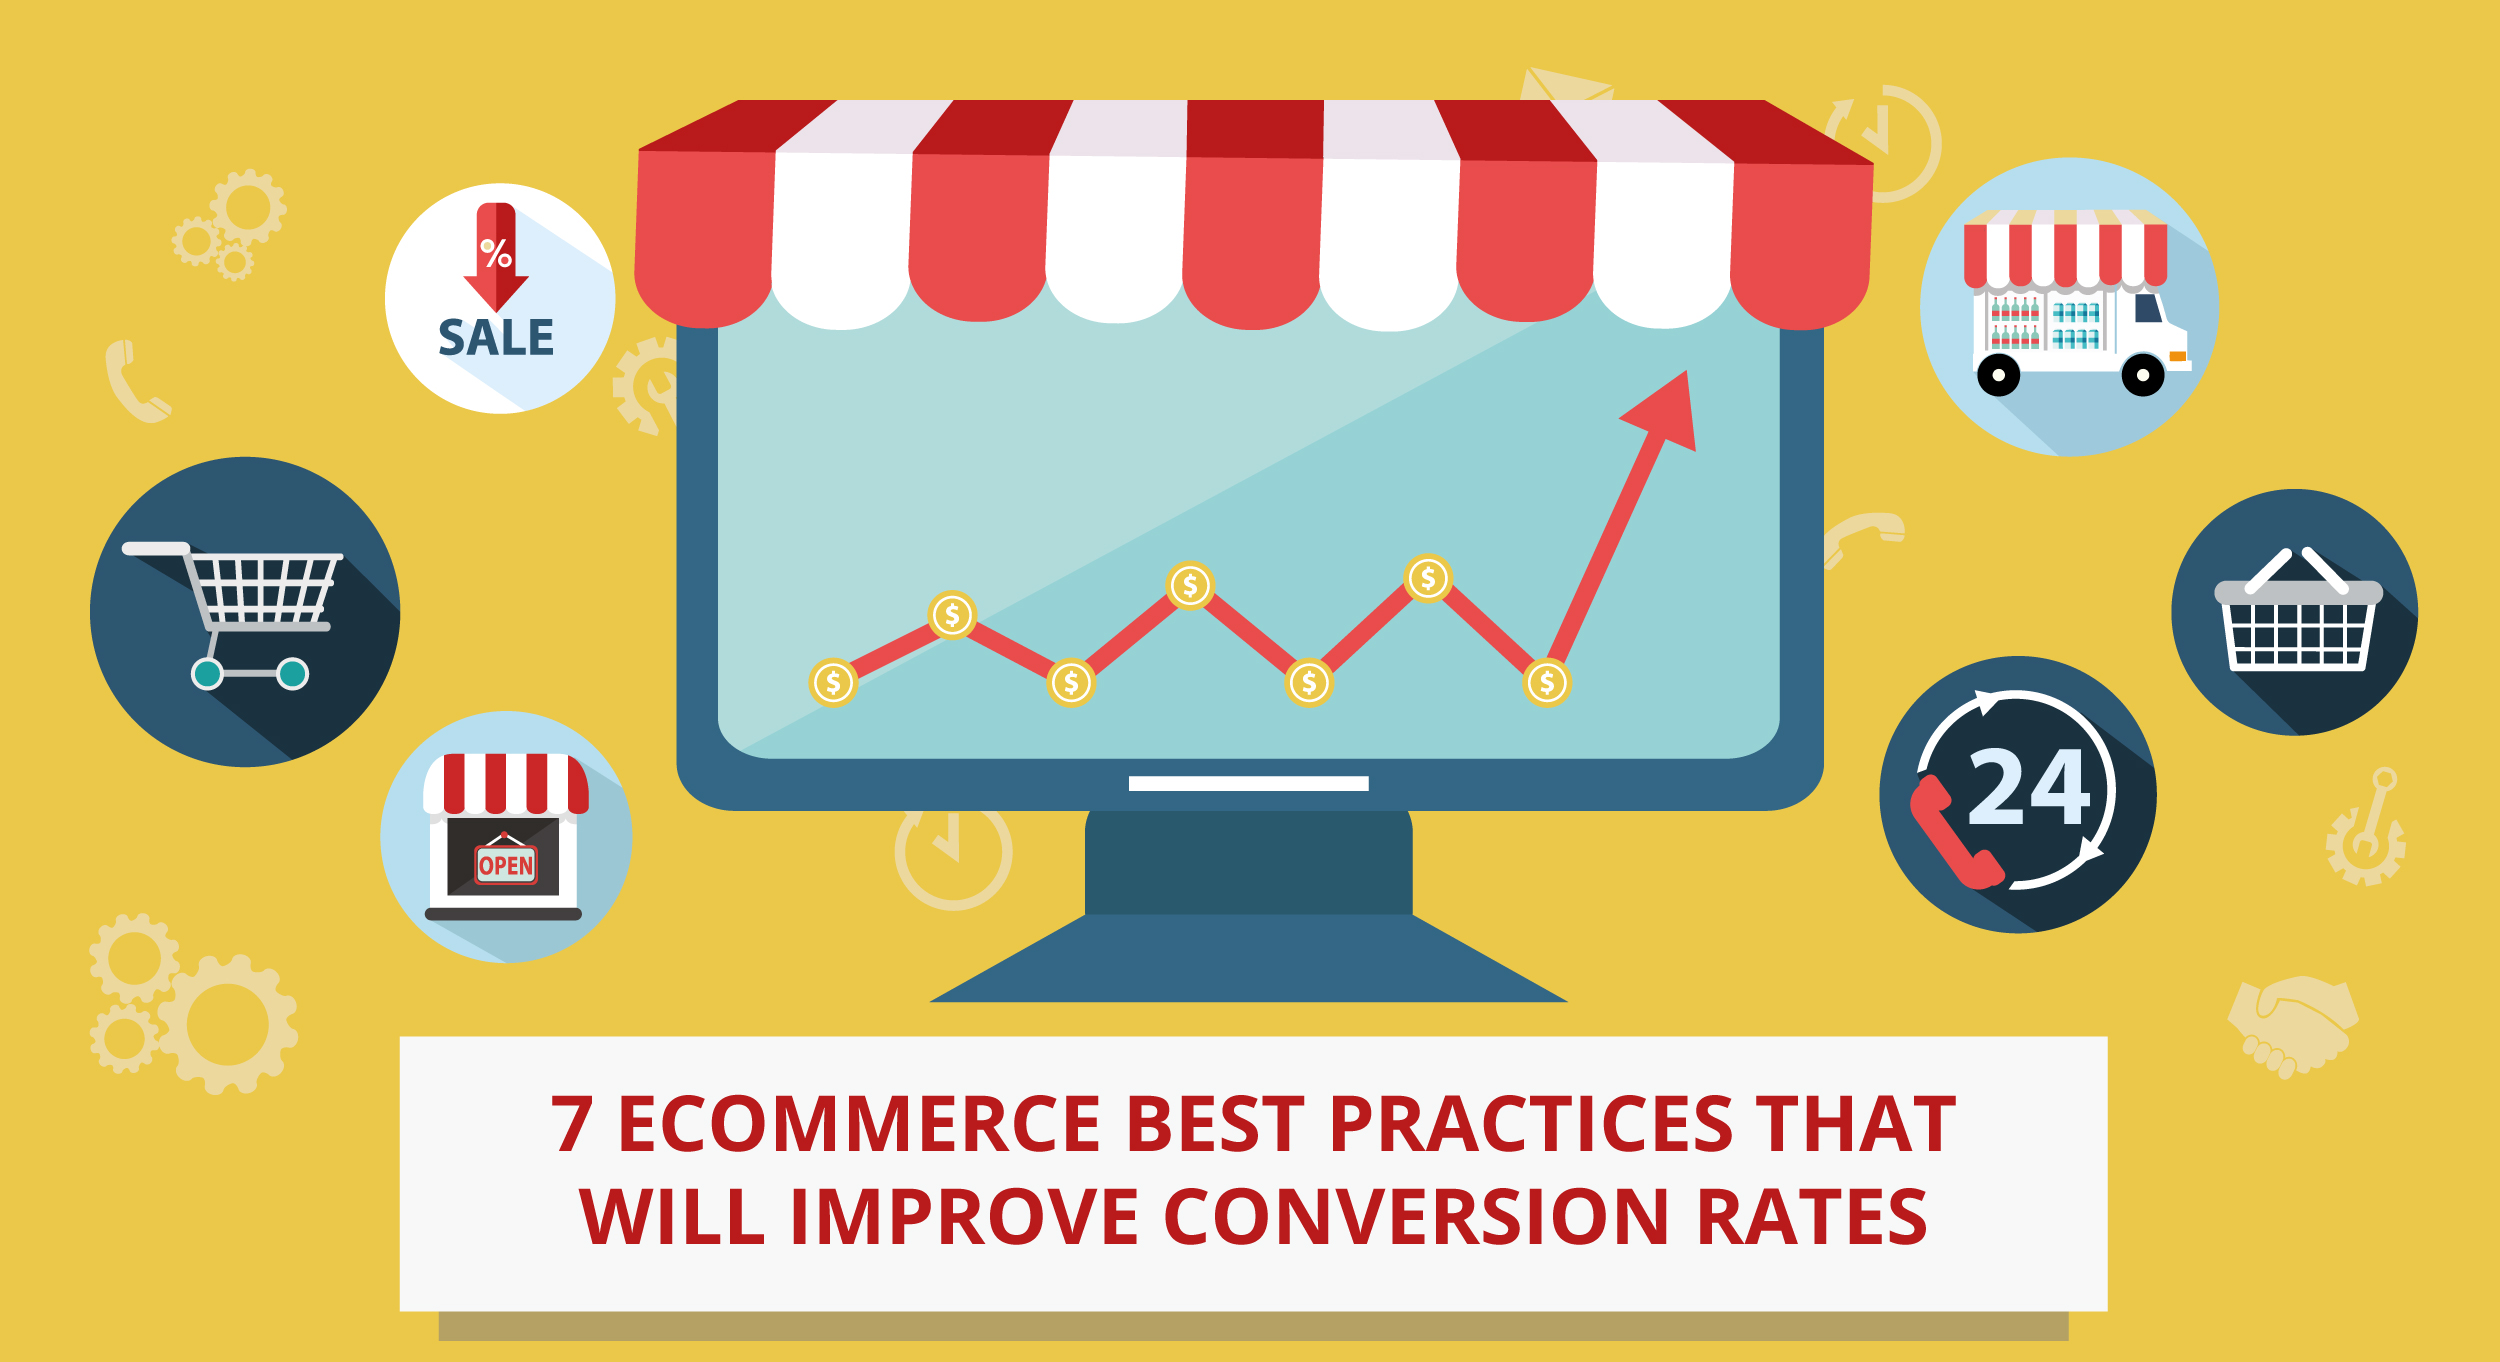 7 Ecommerce Best Practices That Will Improve Conversion Rates - MageMail